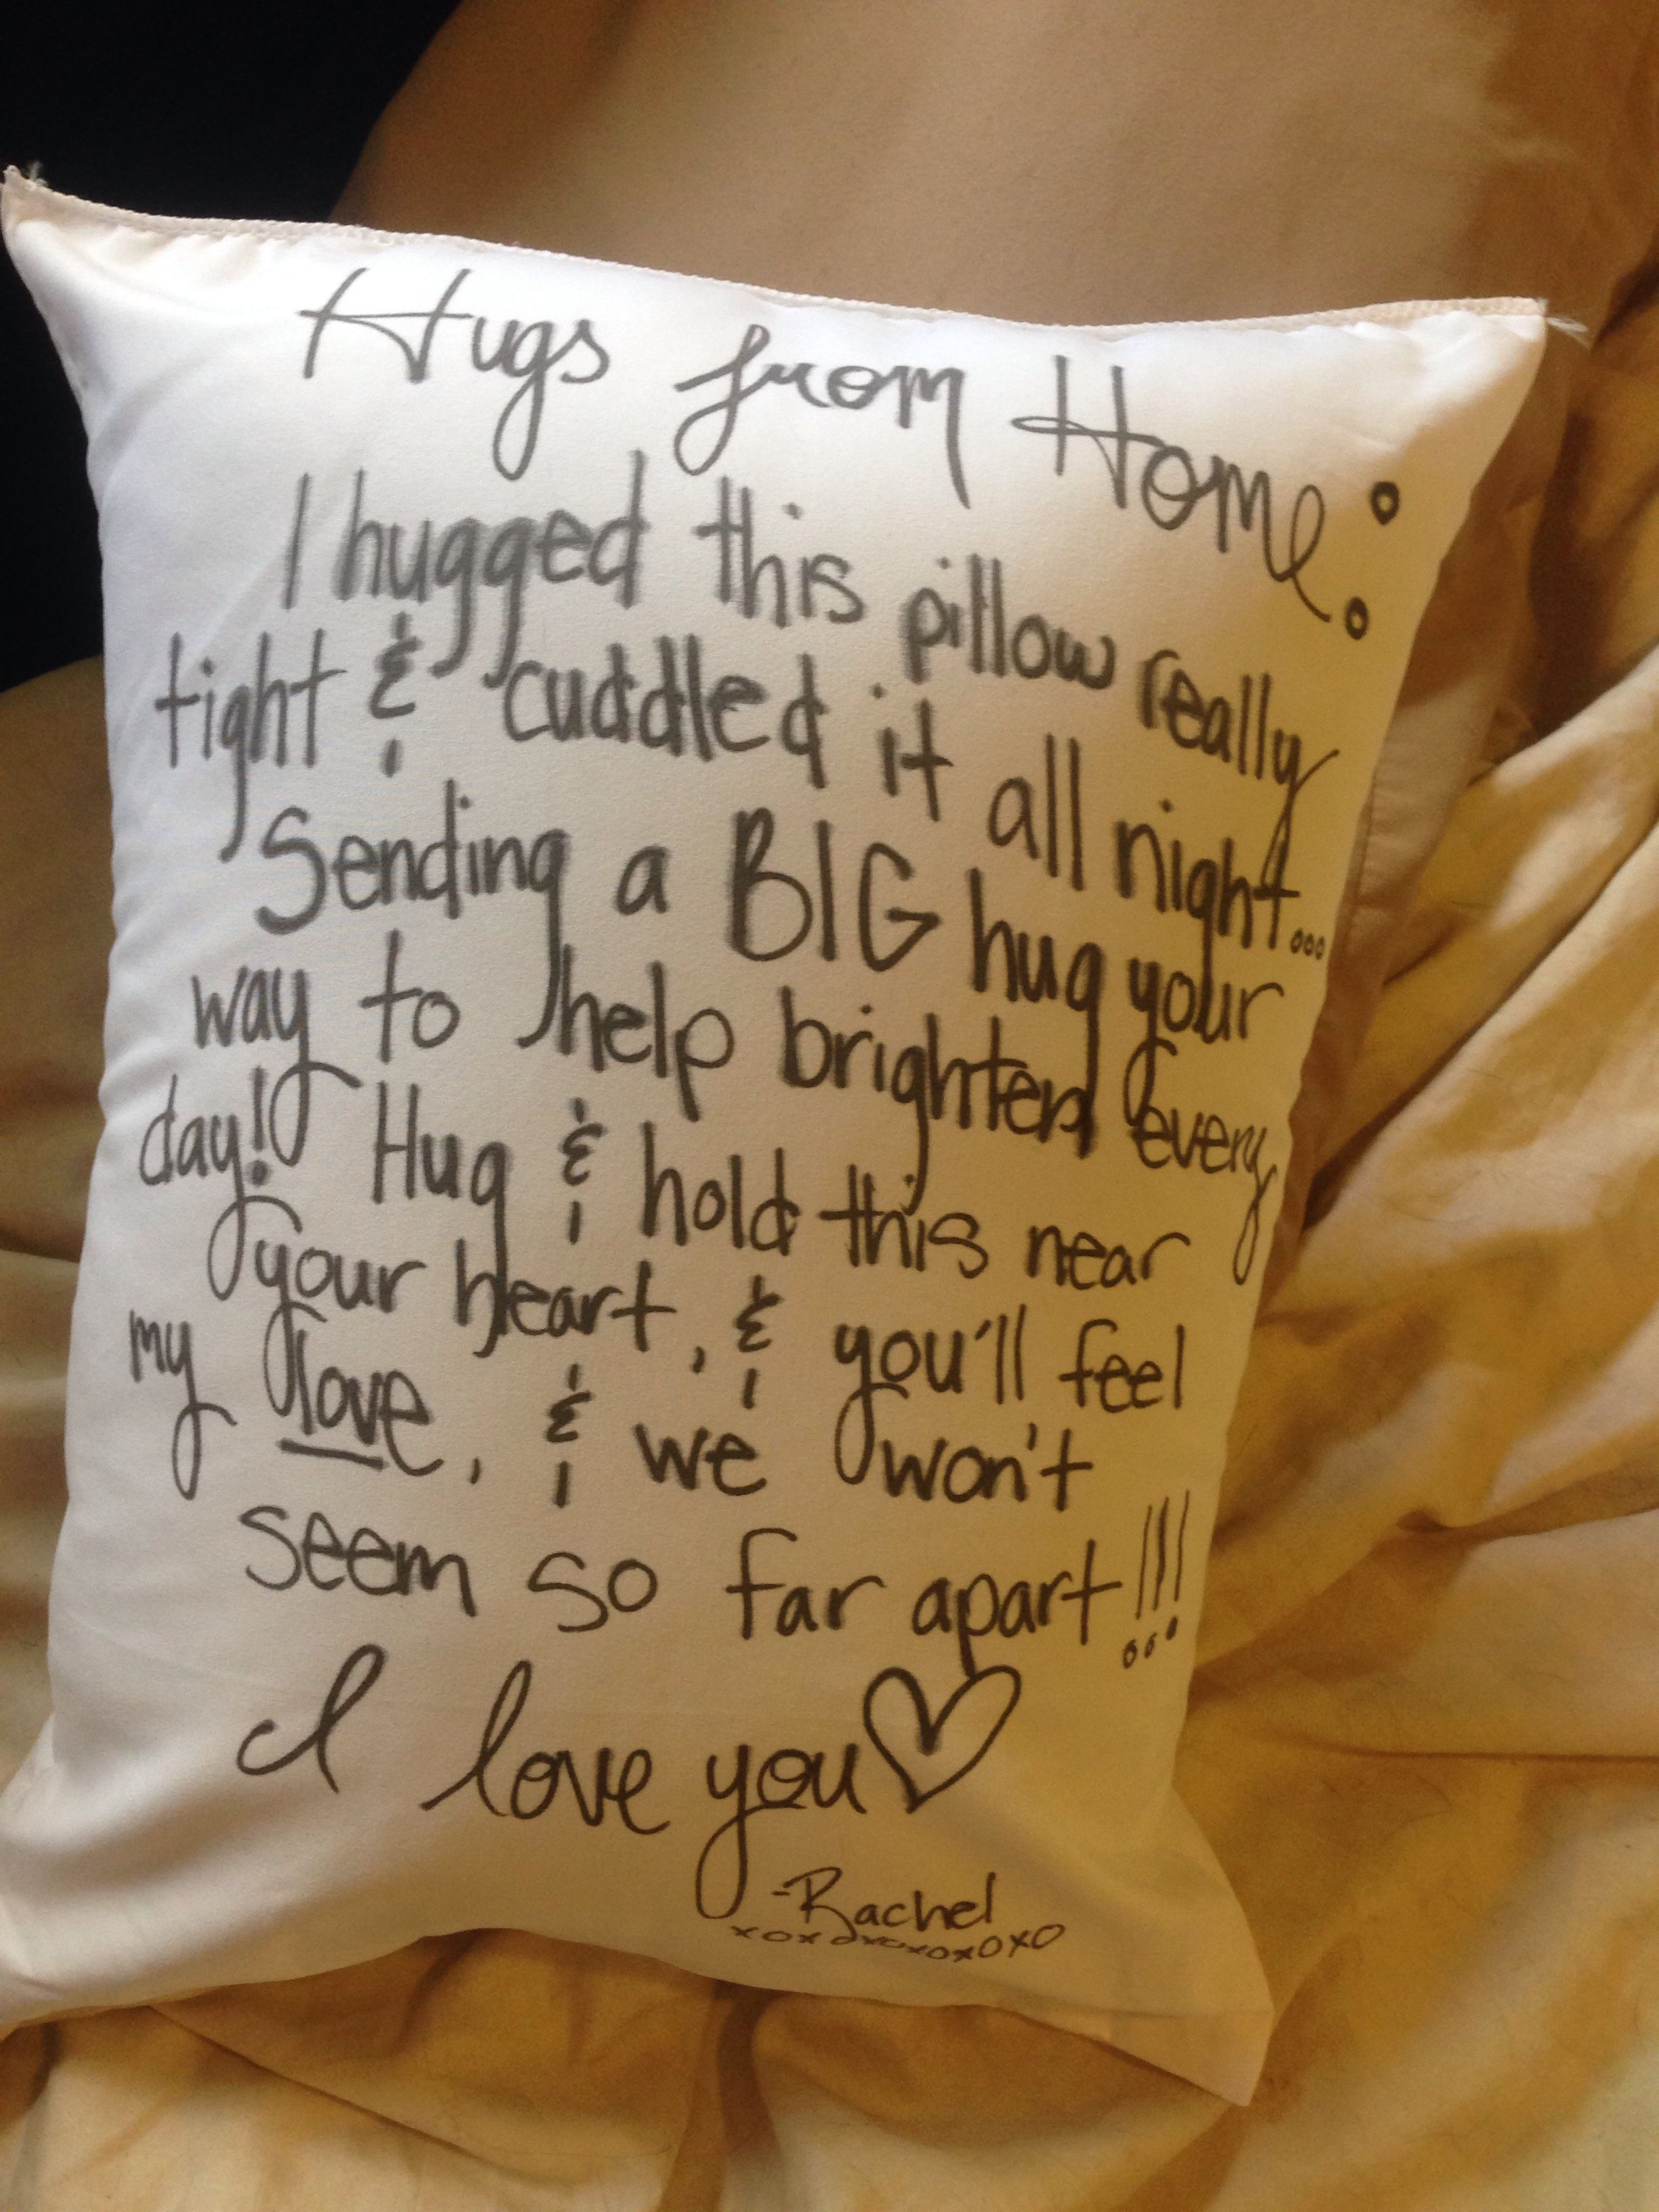 Diy Pillowcase For Him: 34 Gift Ideas for People Who Travel 12 best boyfriend gifts of    ,